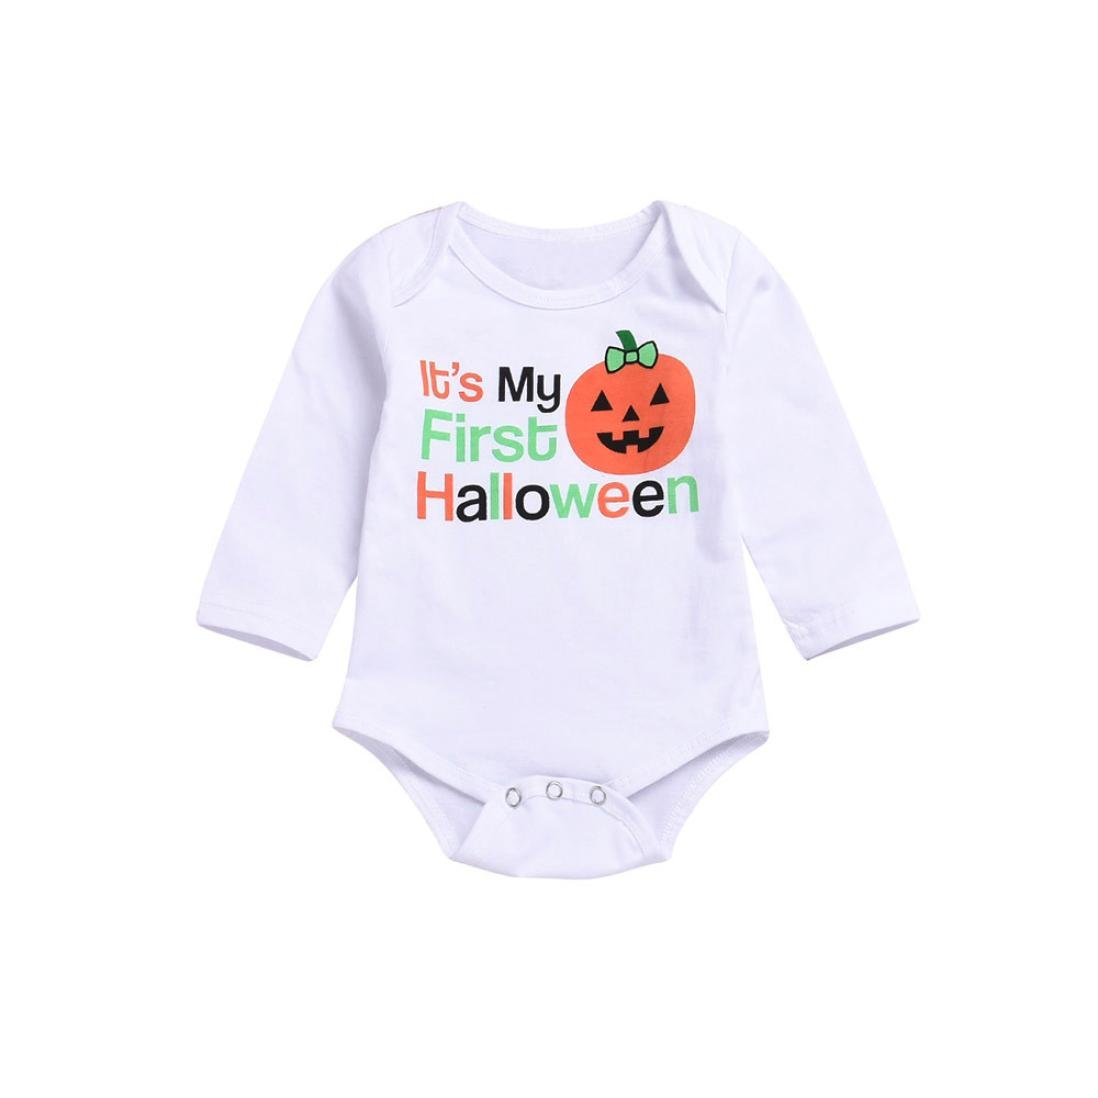 c3b96688c84e Amazon.com  Goodtrade8 Clearance First Halloween Baby Girl Bodysuit Outfit  Unisex Newborn Long Sleeve Romper Jumpsuit Costumes Clothes Green  Shoes